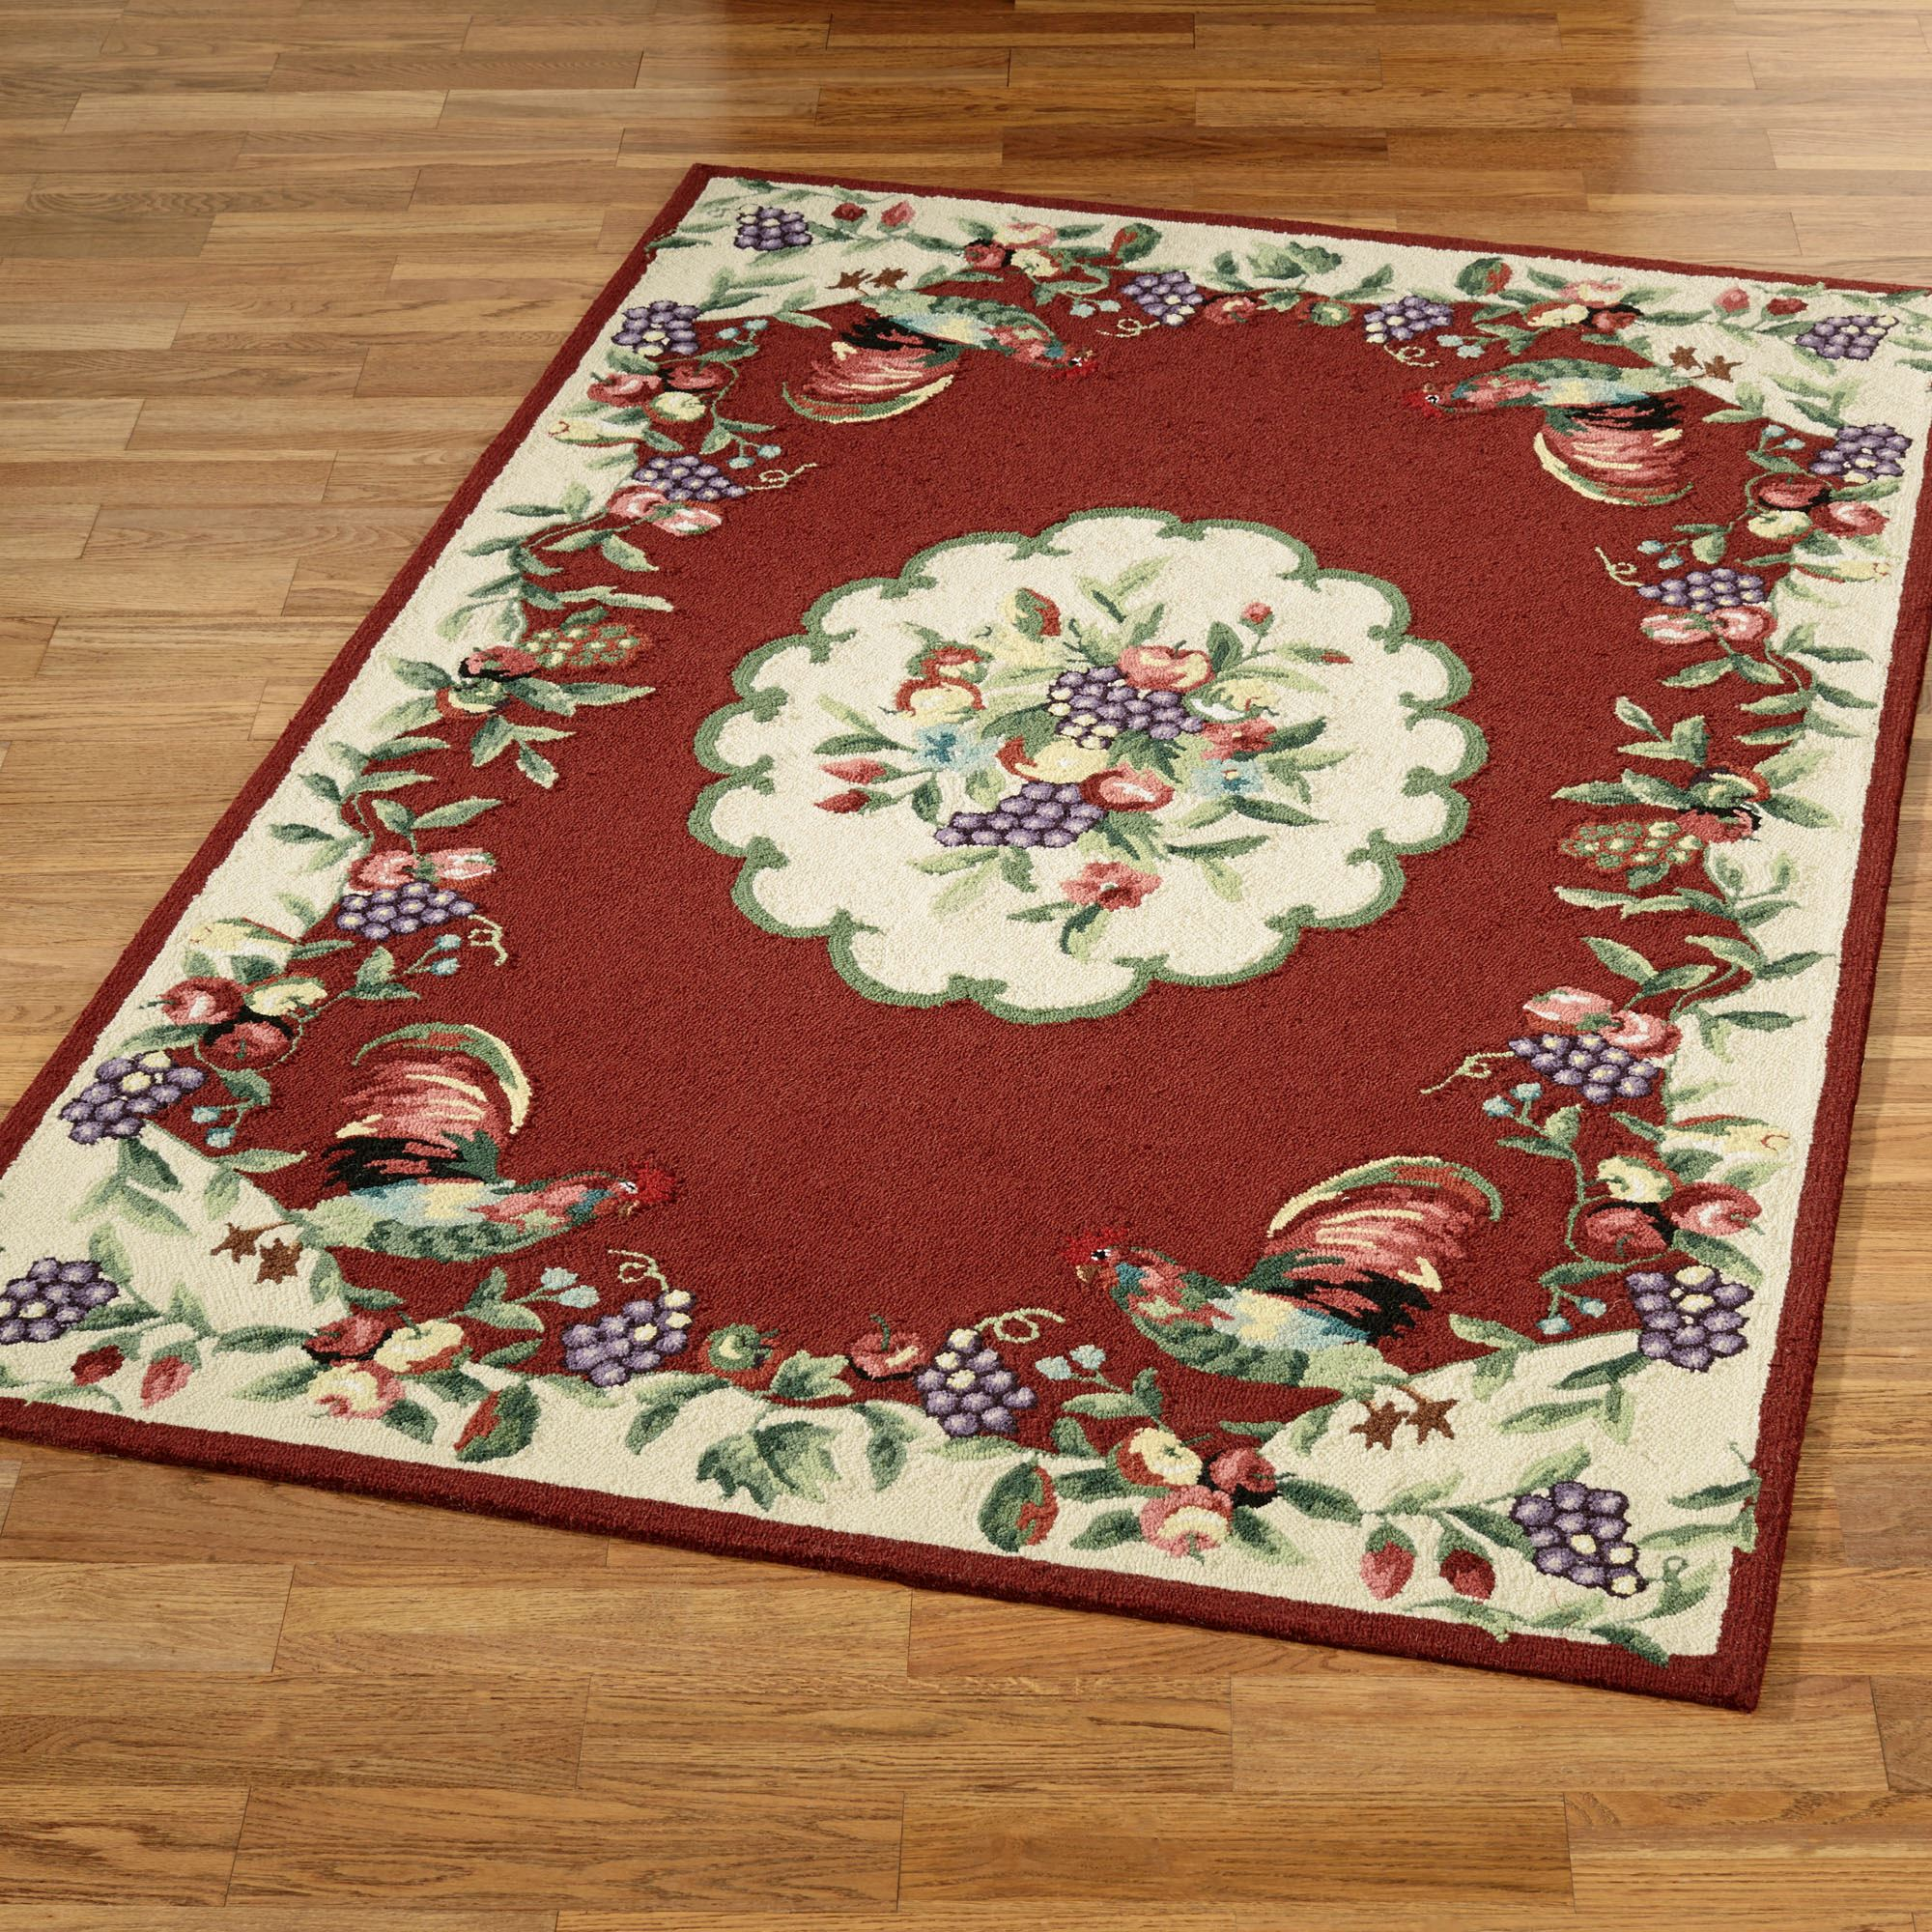 Rooster rugs sonoma rooster rectangle rug NAEGUOE